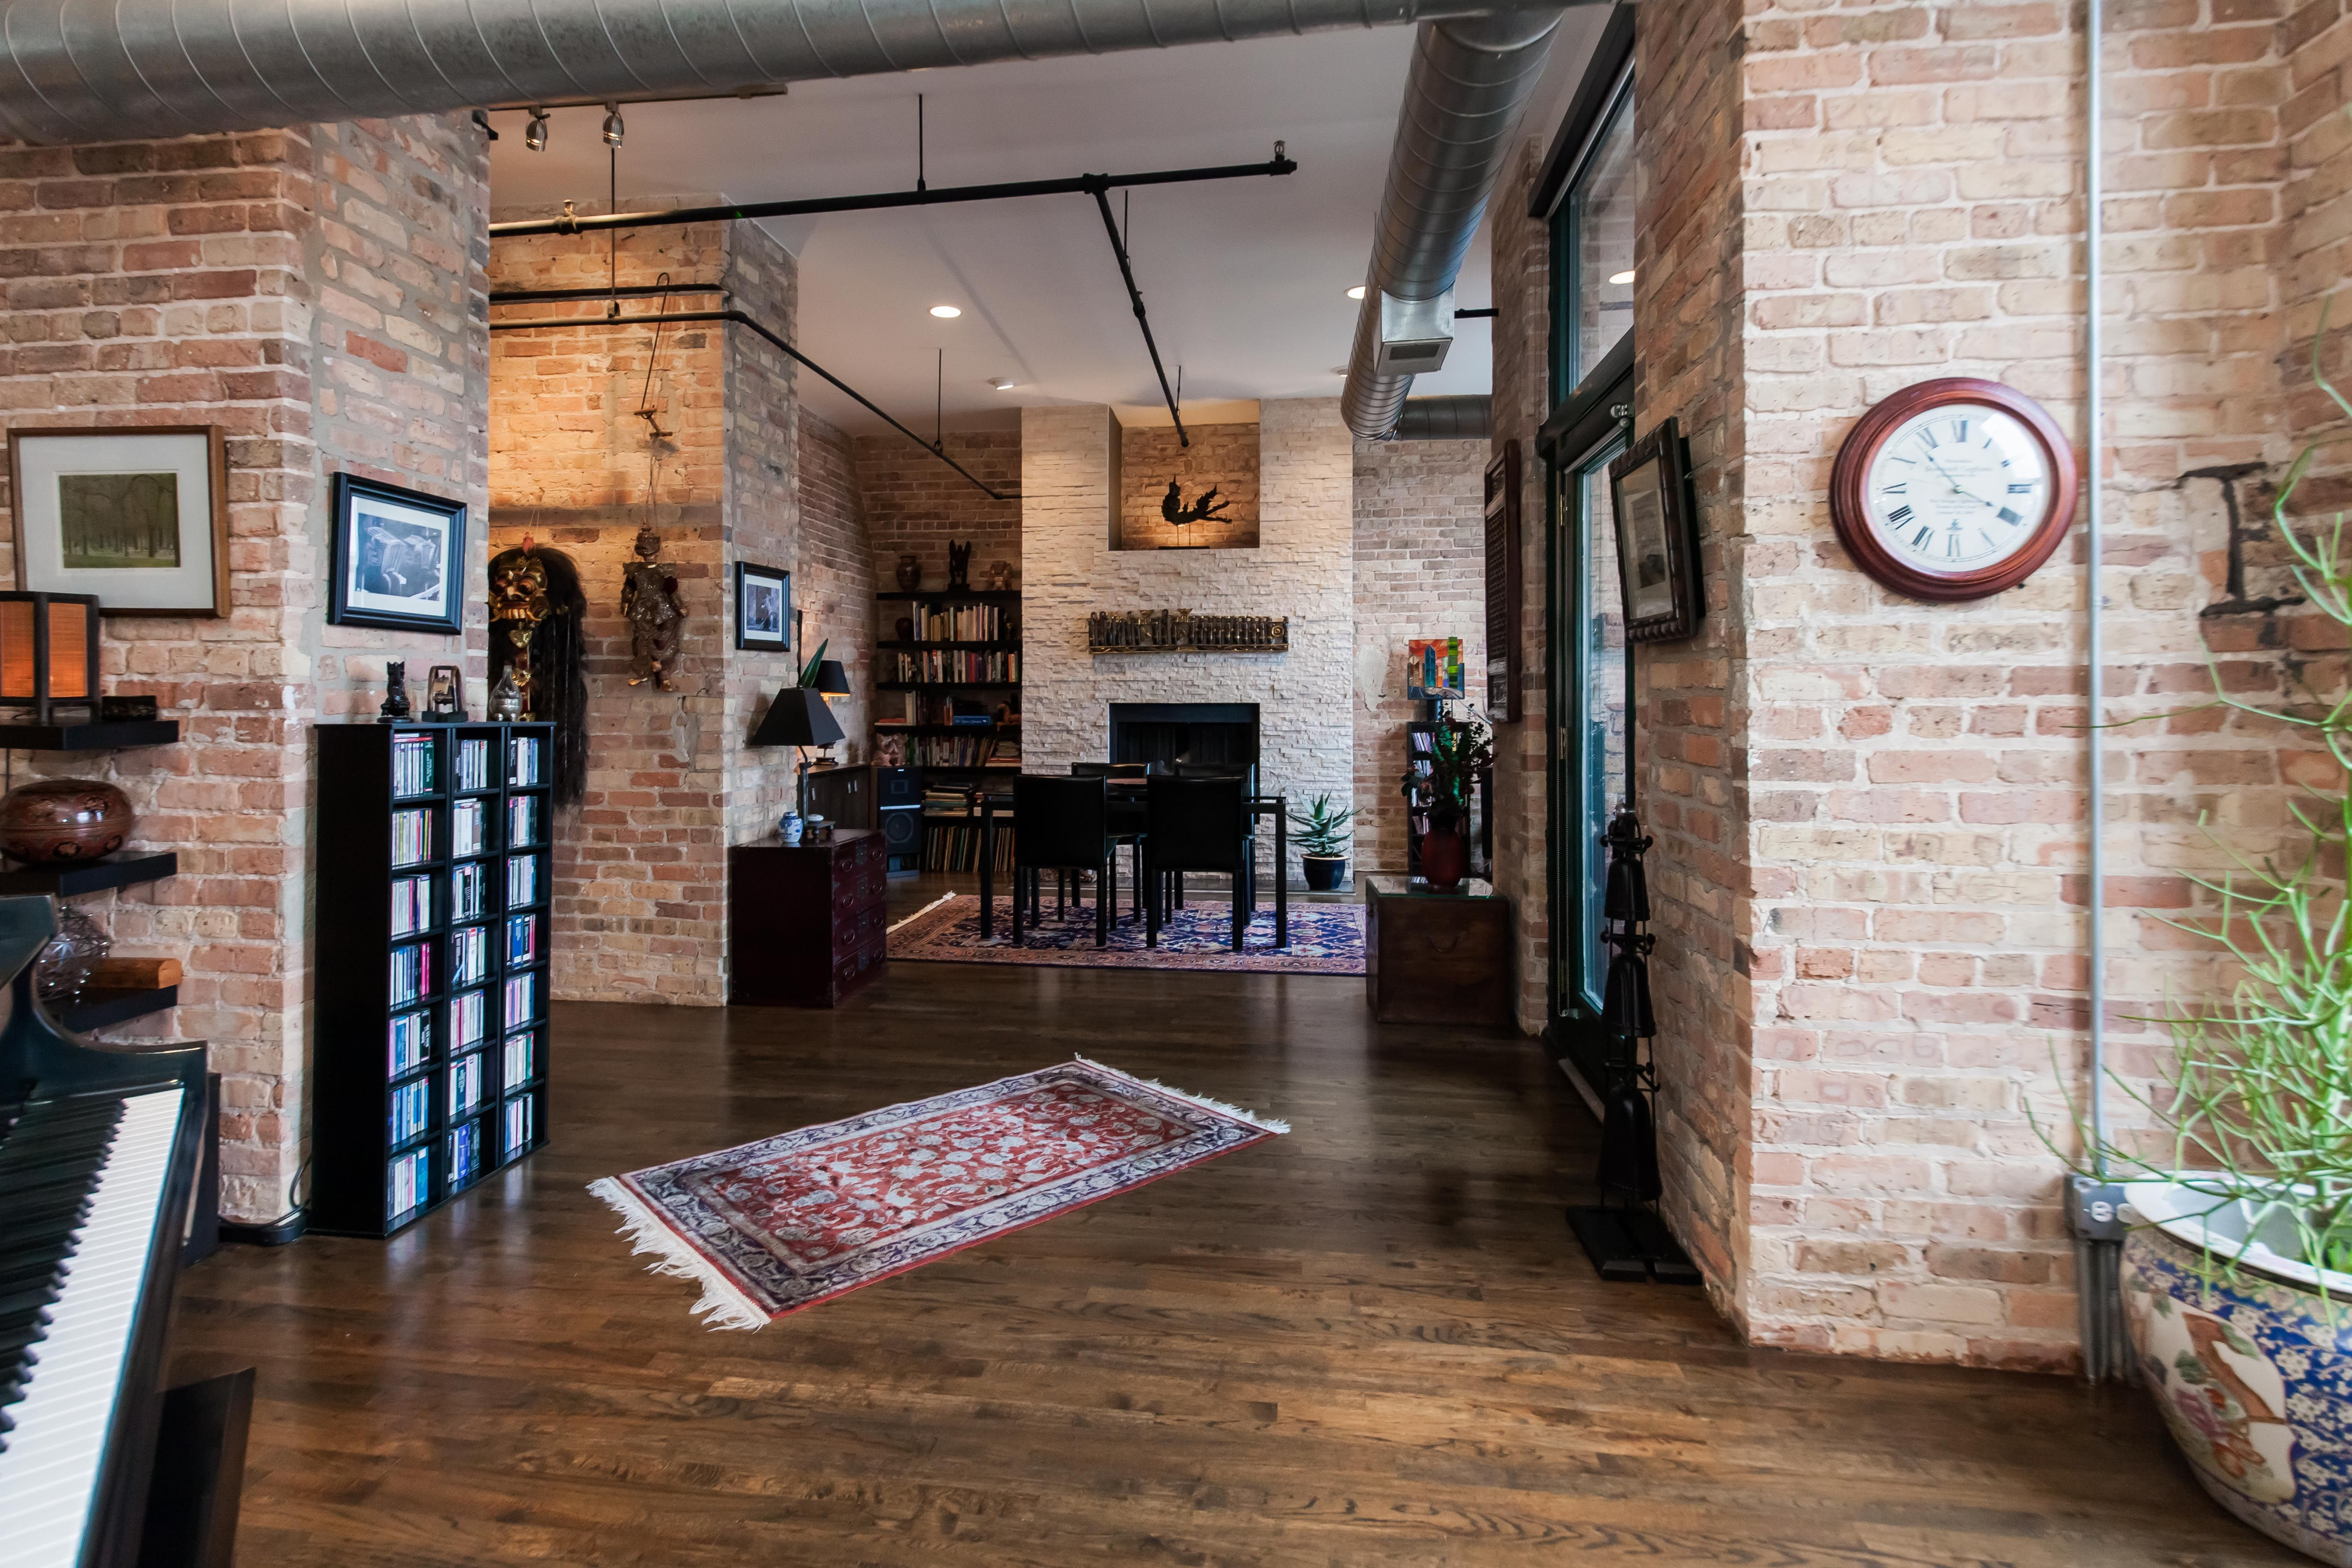 This 1400 squarefoot loft for rent in the West Loop was